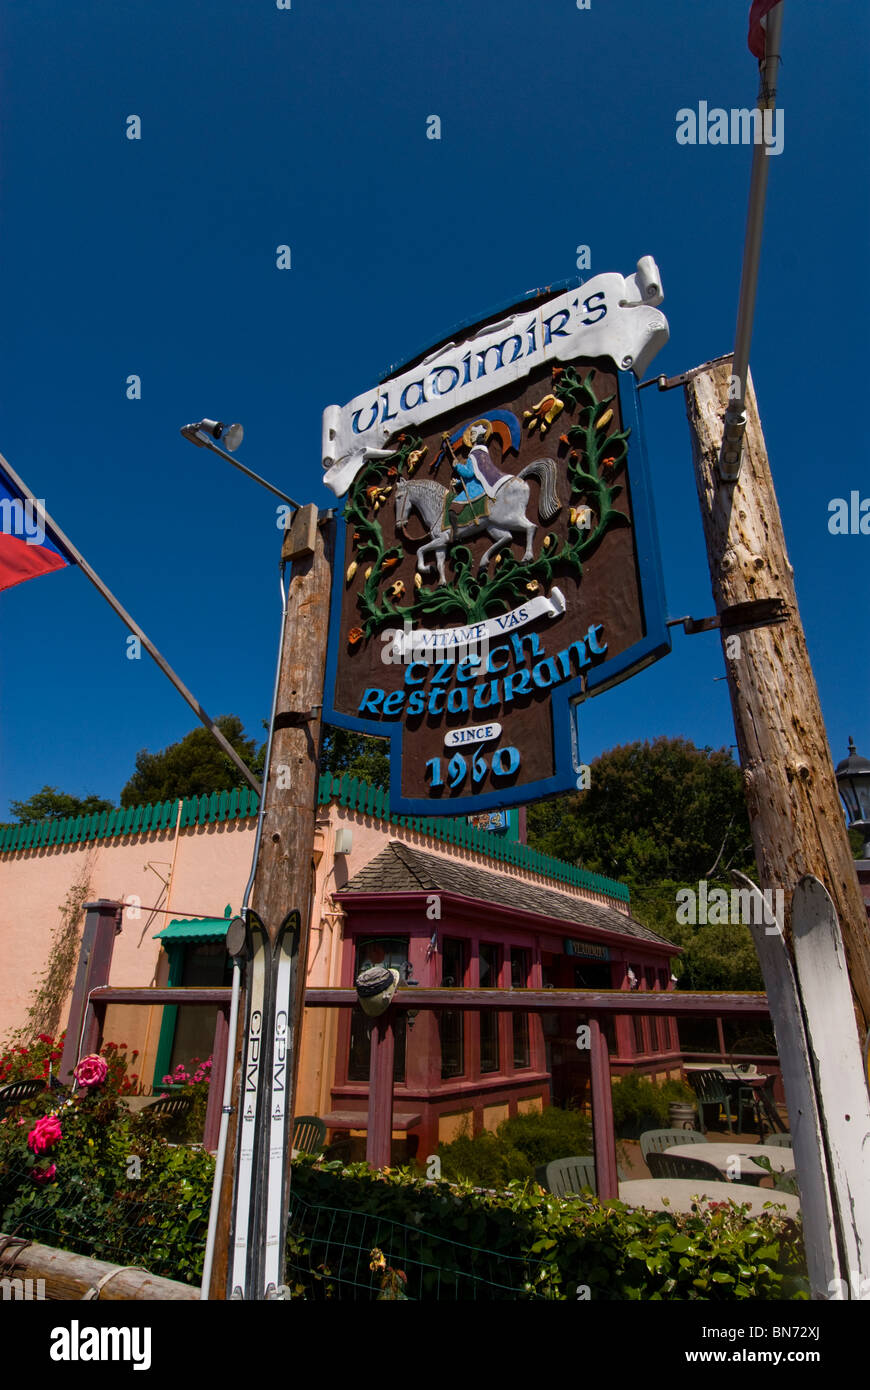 Vladimir's Czech Restaurant in Inverness Park at Point Reyes CA California - Stock Image